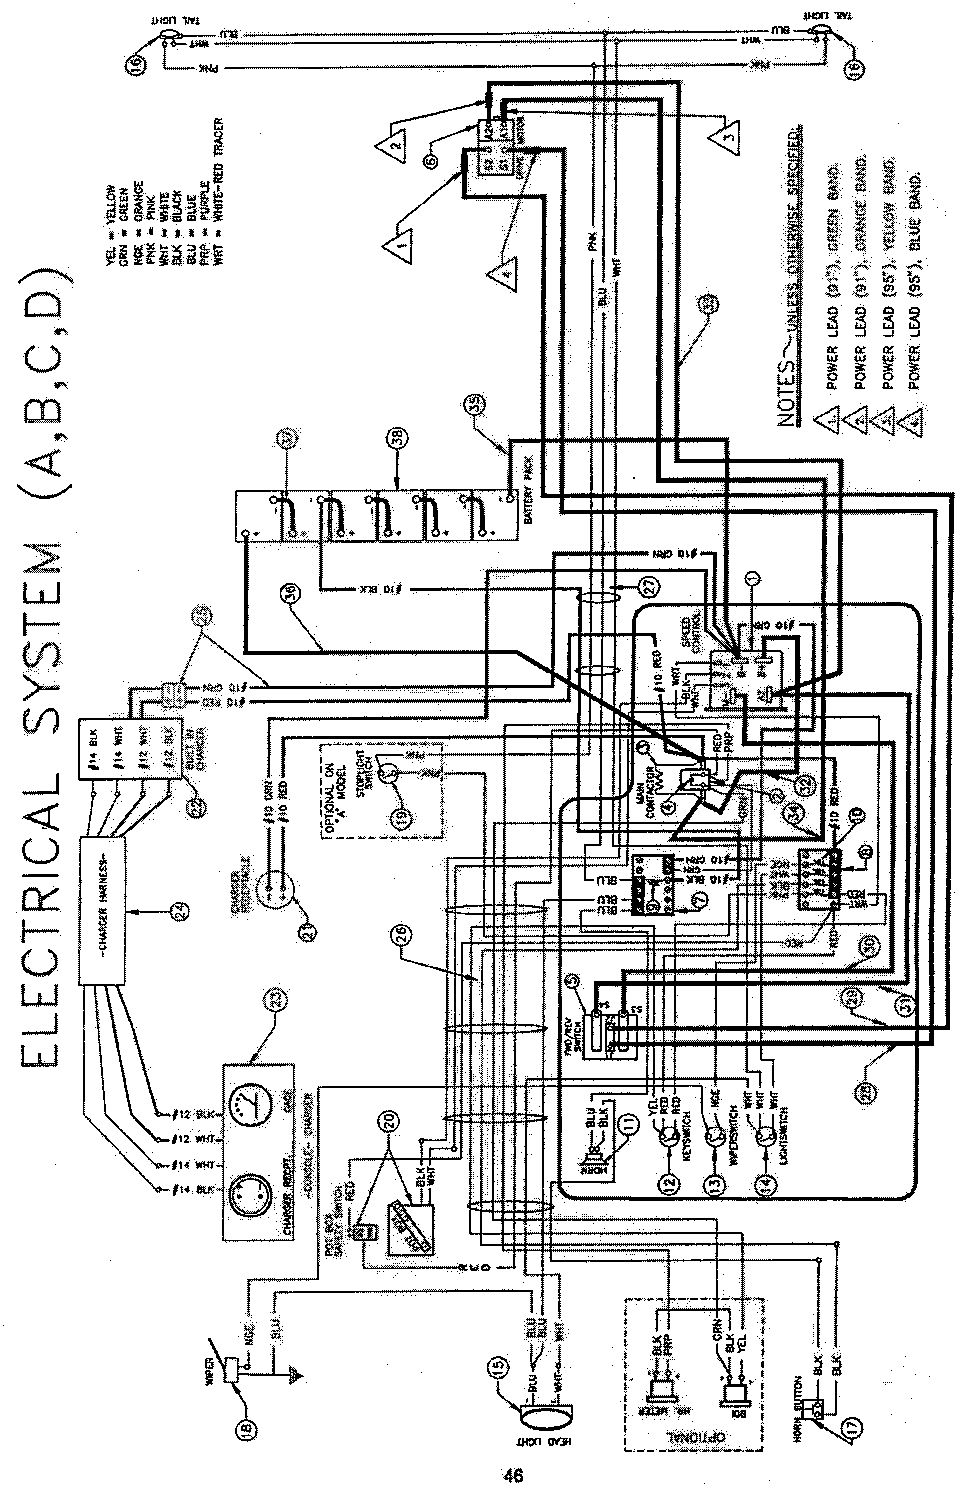 Nordskog280_92plus vintagegolfcartparts com westinghouse golf cart wiring diagram at aneh.co